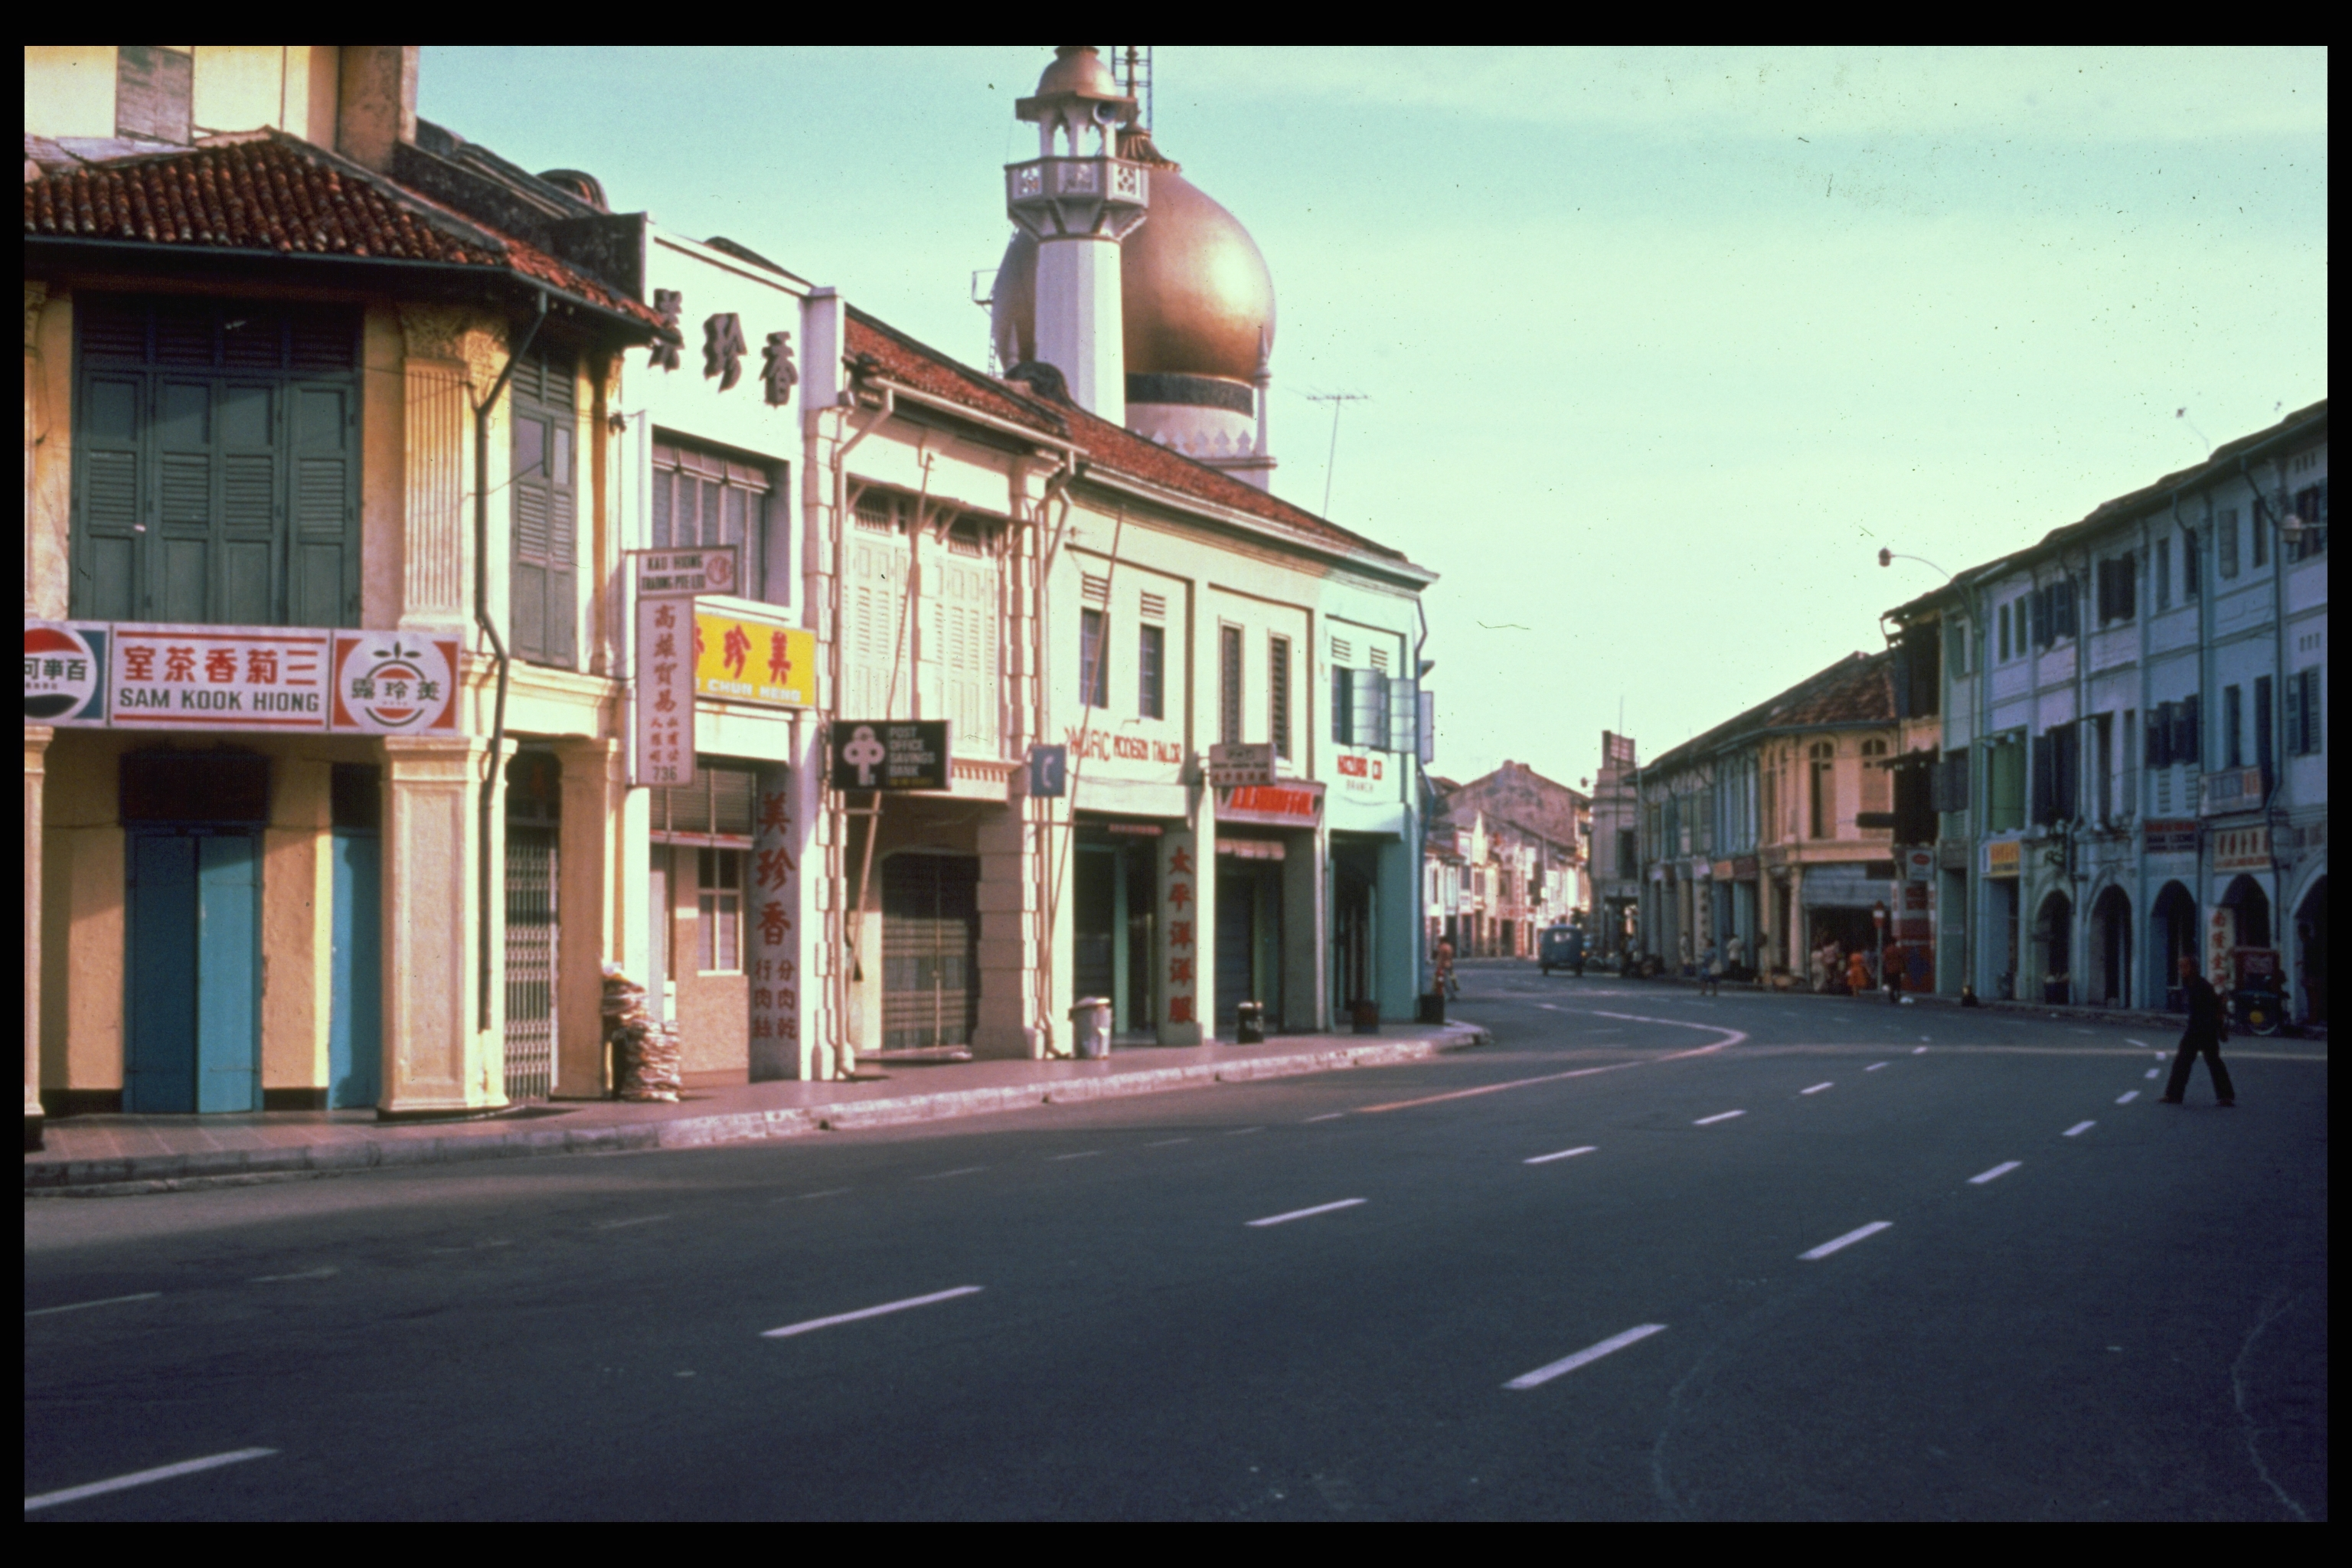 North Bridge Road, with top of Sultan Mosque visible, 1979. Paul Piollet Collection, courtesy of National Archives of Singapore